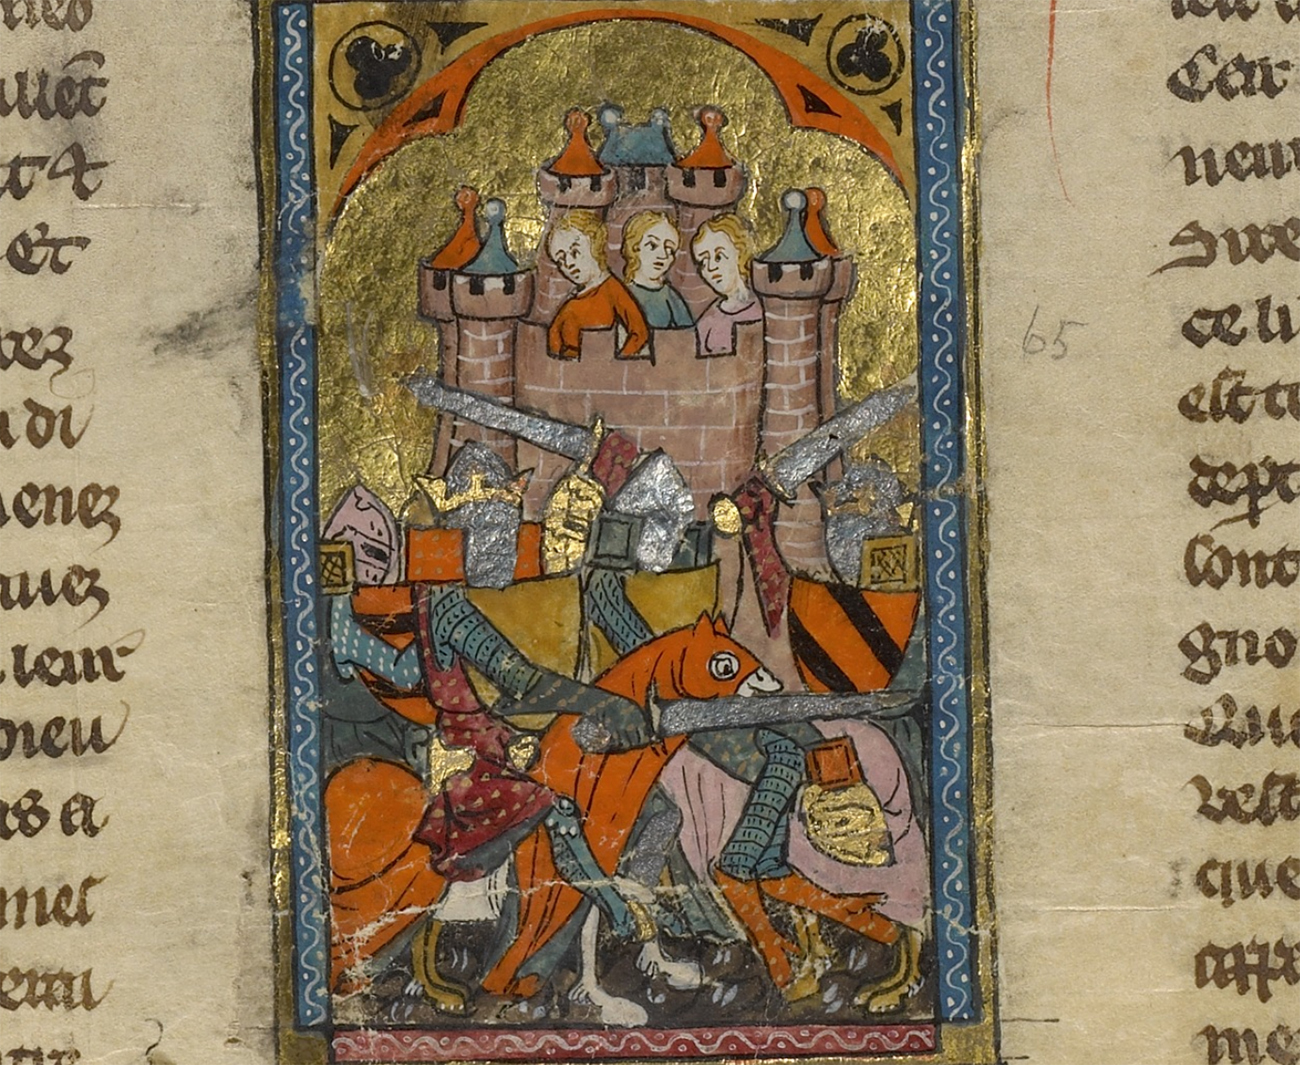 The Tournament before the Castle of Pucelles, about 1320–40, unknown artist. Tempera colors, gold and silver on parchment, 15 1/2 x 11 3/4 in. The J. Paul Getty Museum, Ms. Ludwig XV 5, fol. 283v. Digital image courtesy of the Getty's Open Content Program